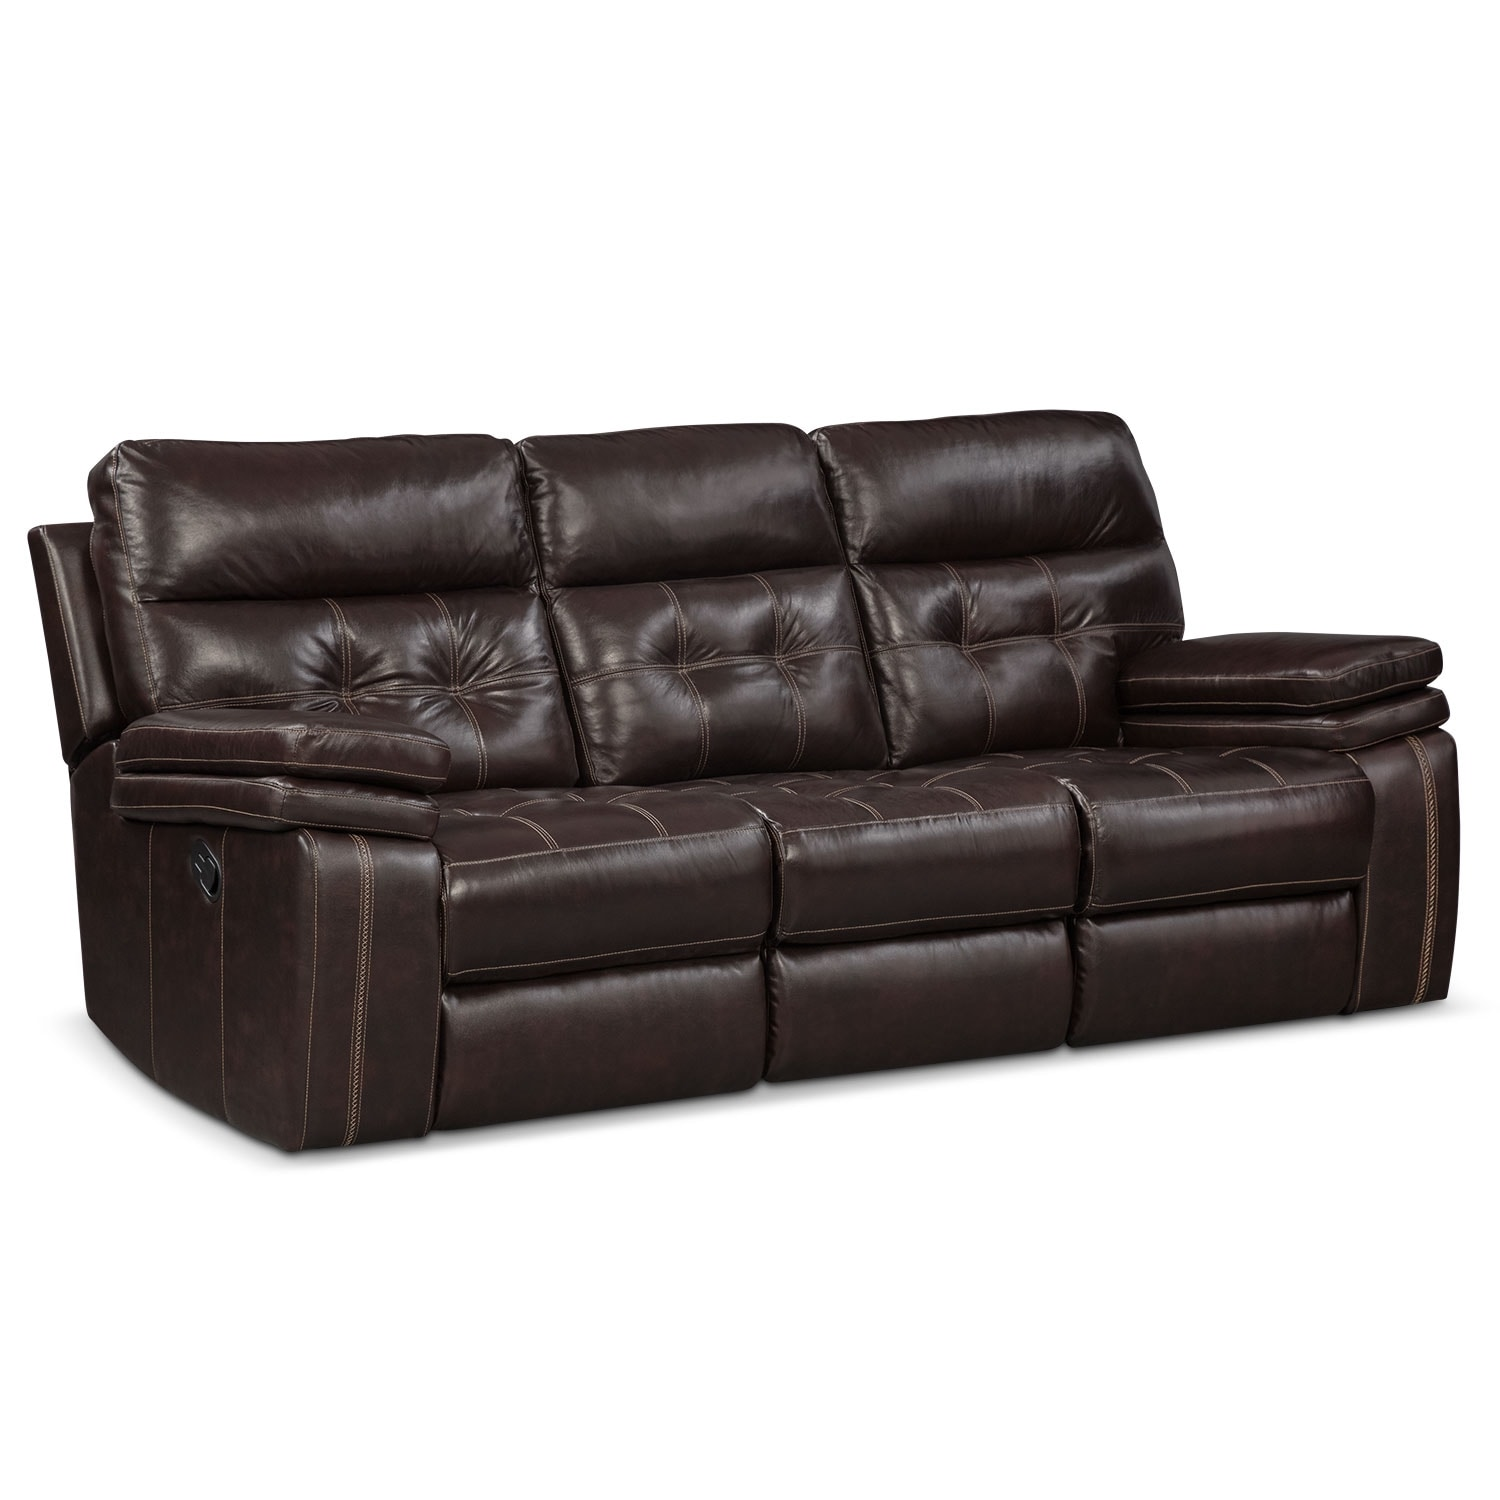 Brisco Manual Reclining Sofa And Recliner Set Brown